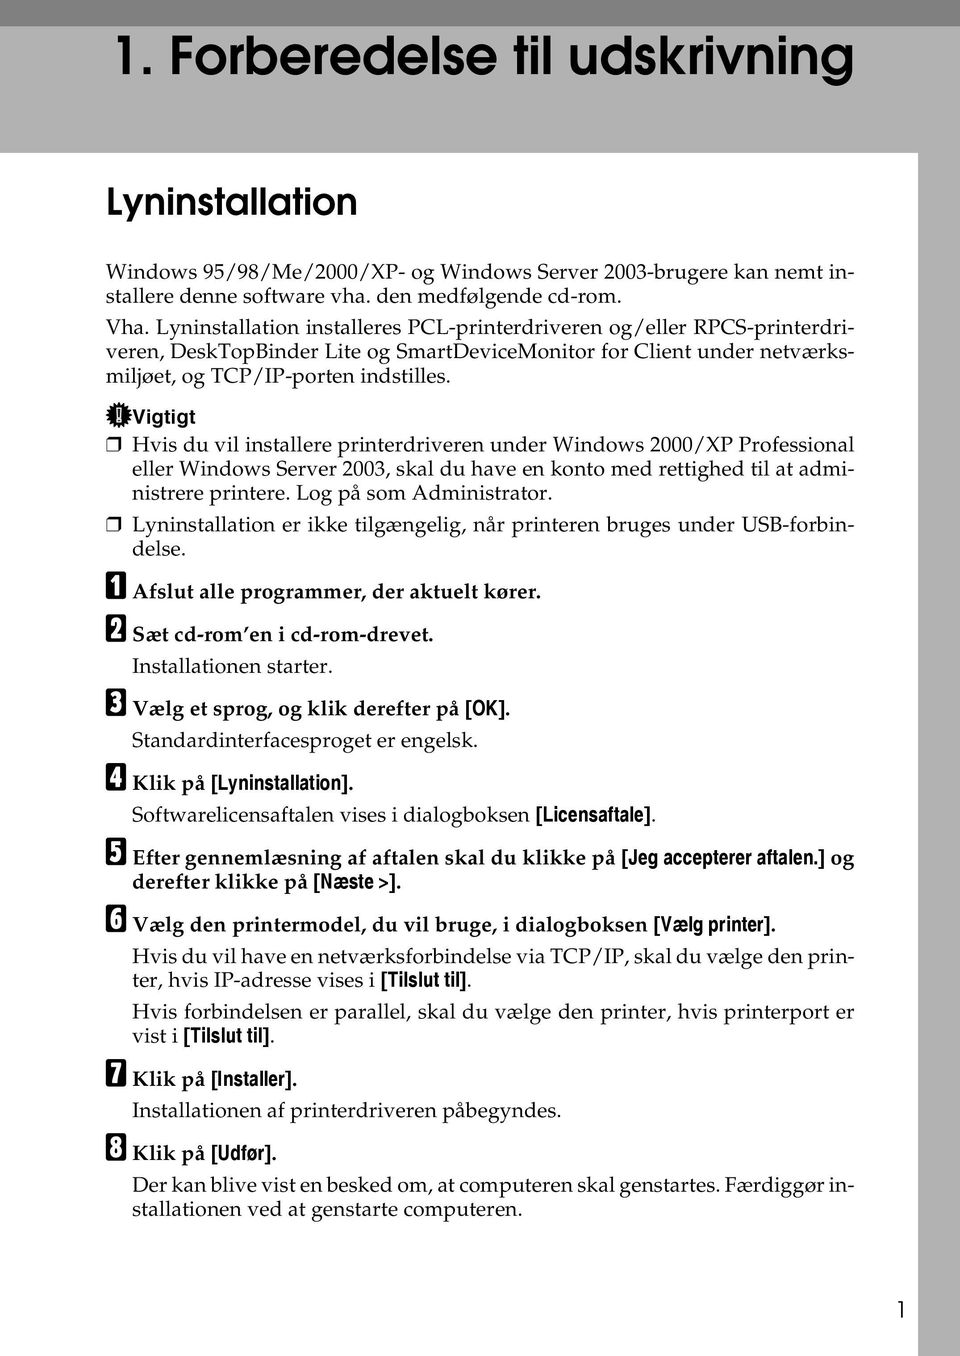 Vigtigt Hvis du vil installere printerdriveren under Windows 2000/XP Professional eller Windows Server 2003, skal du have en konto med rettighed til at administrere printere. Log på som Administrator.